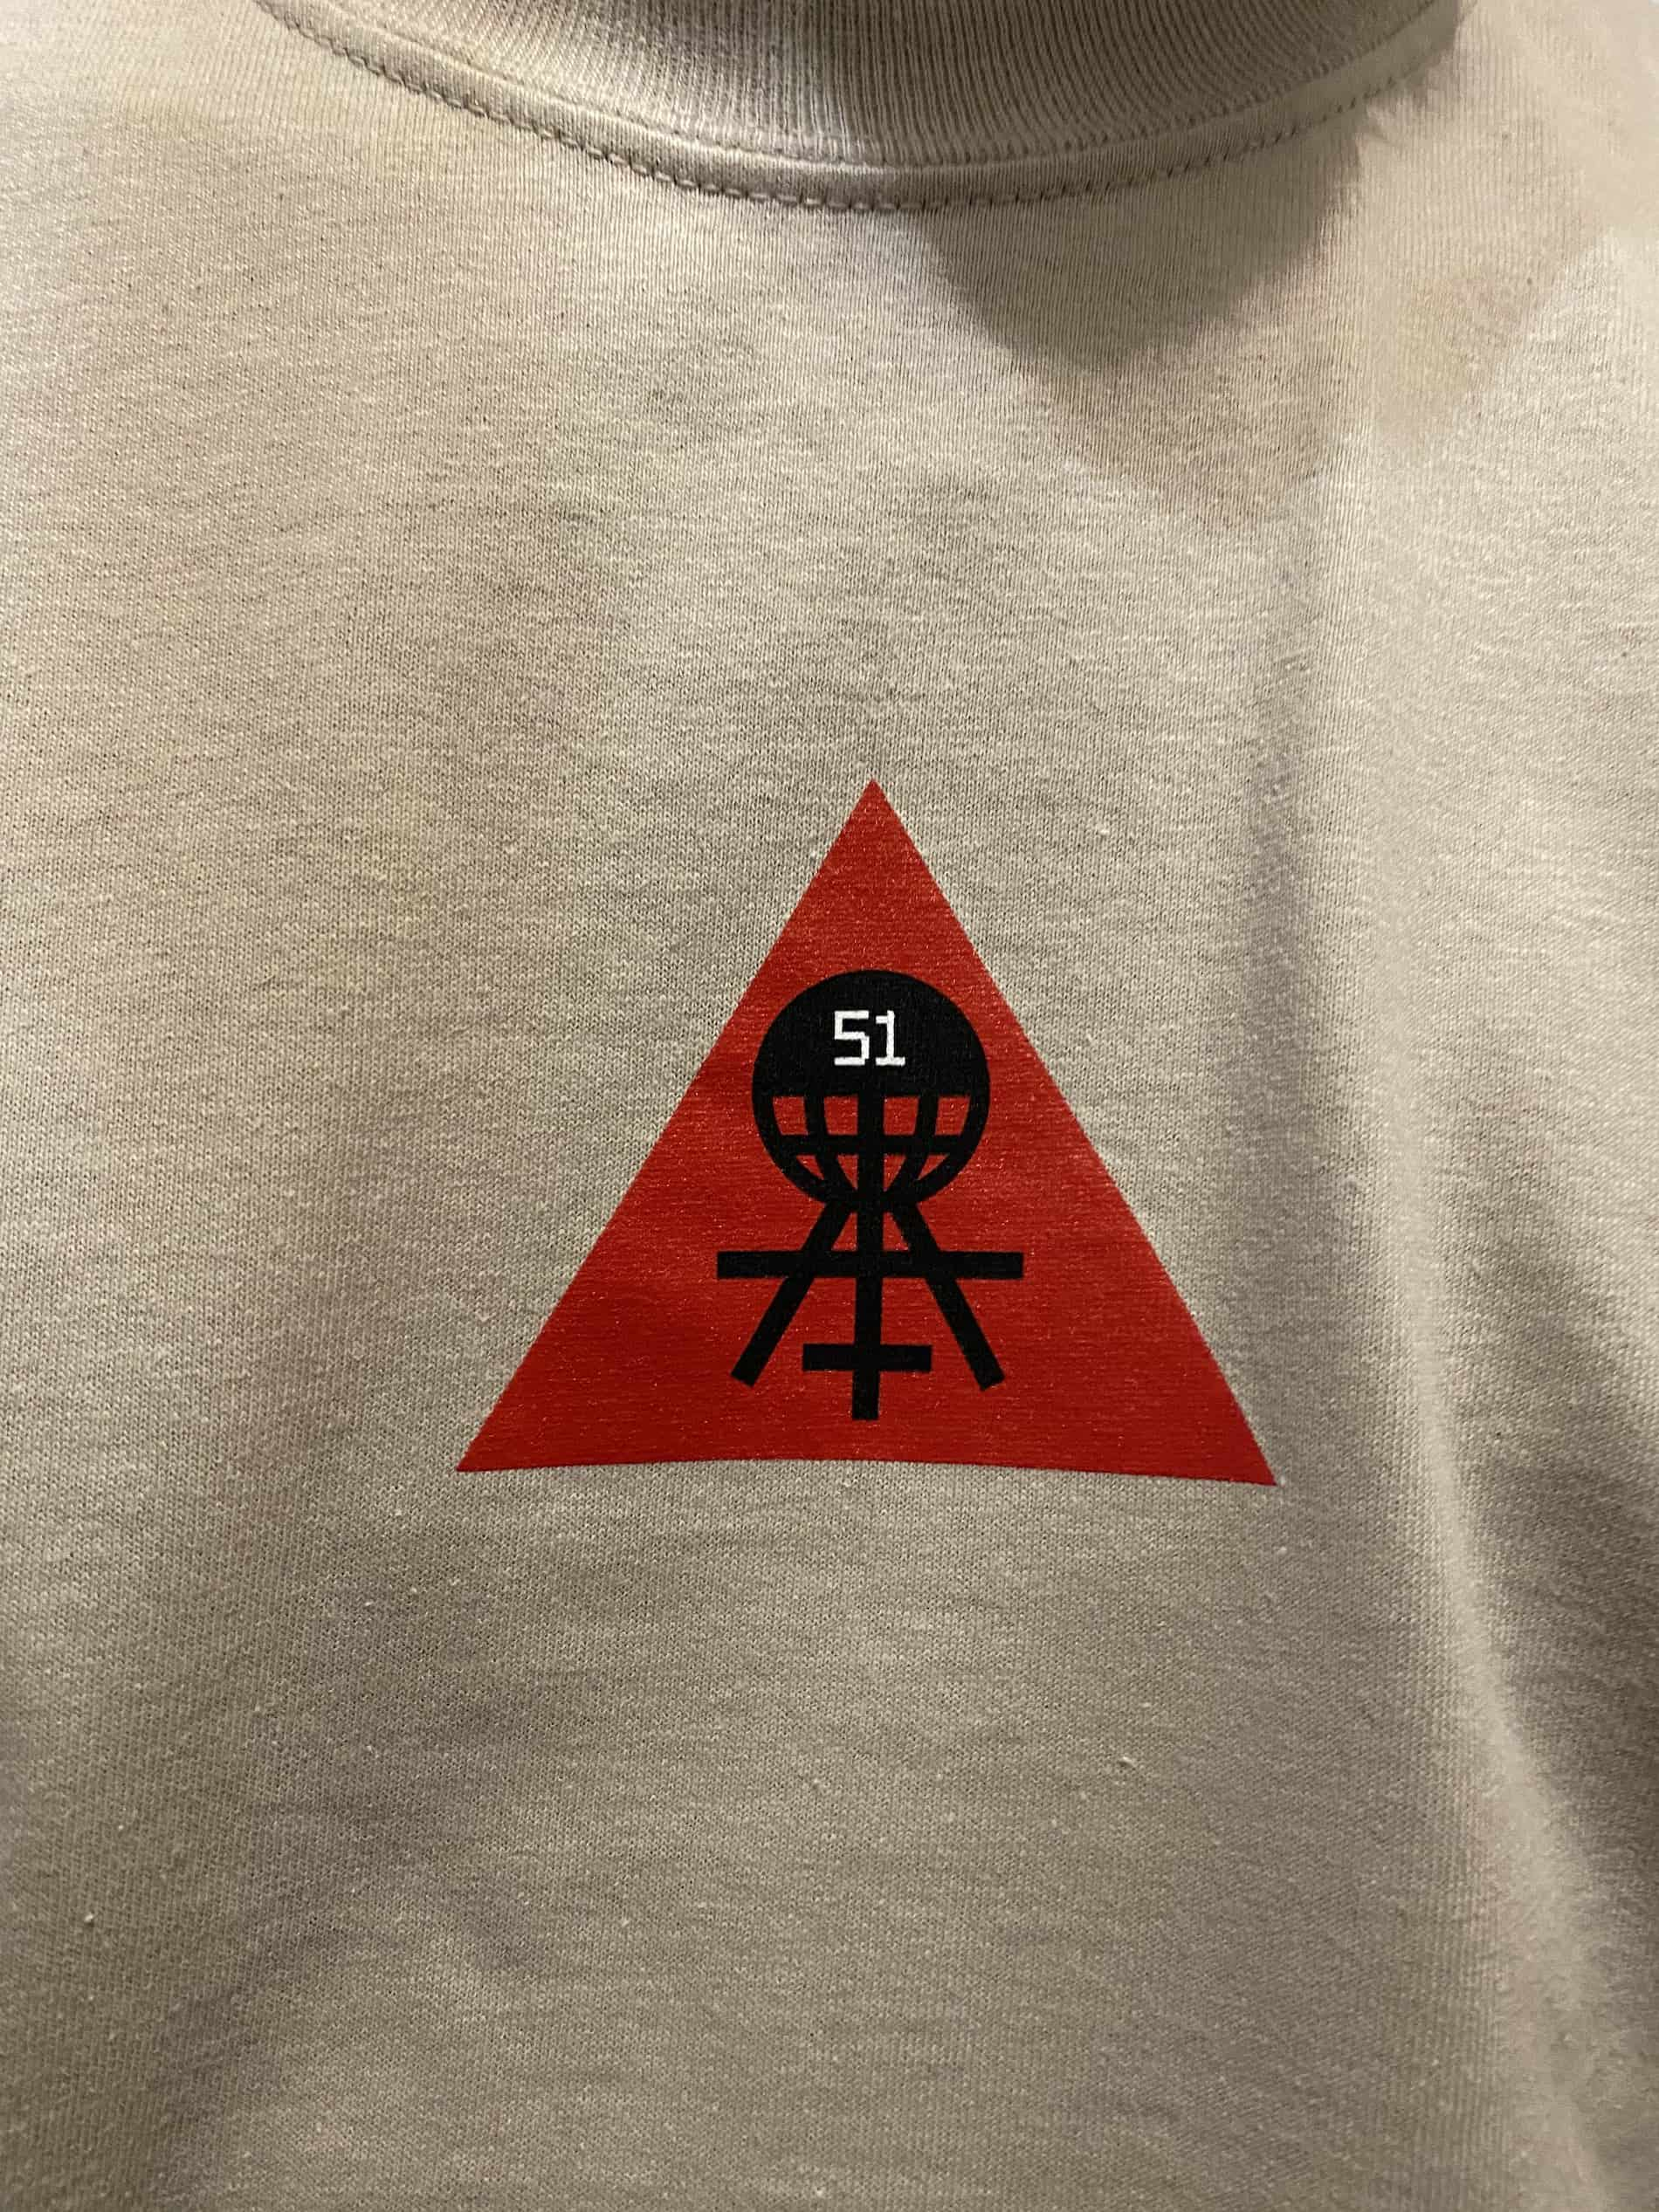 Army of 51 Symbol T-Shirt Sand